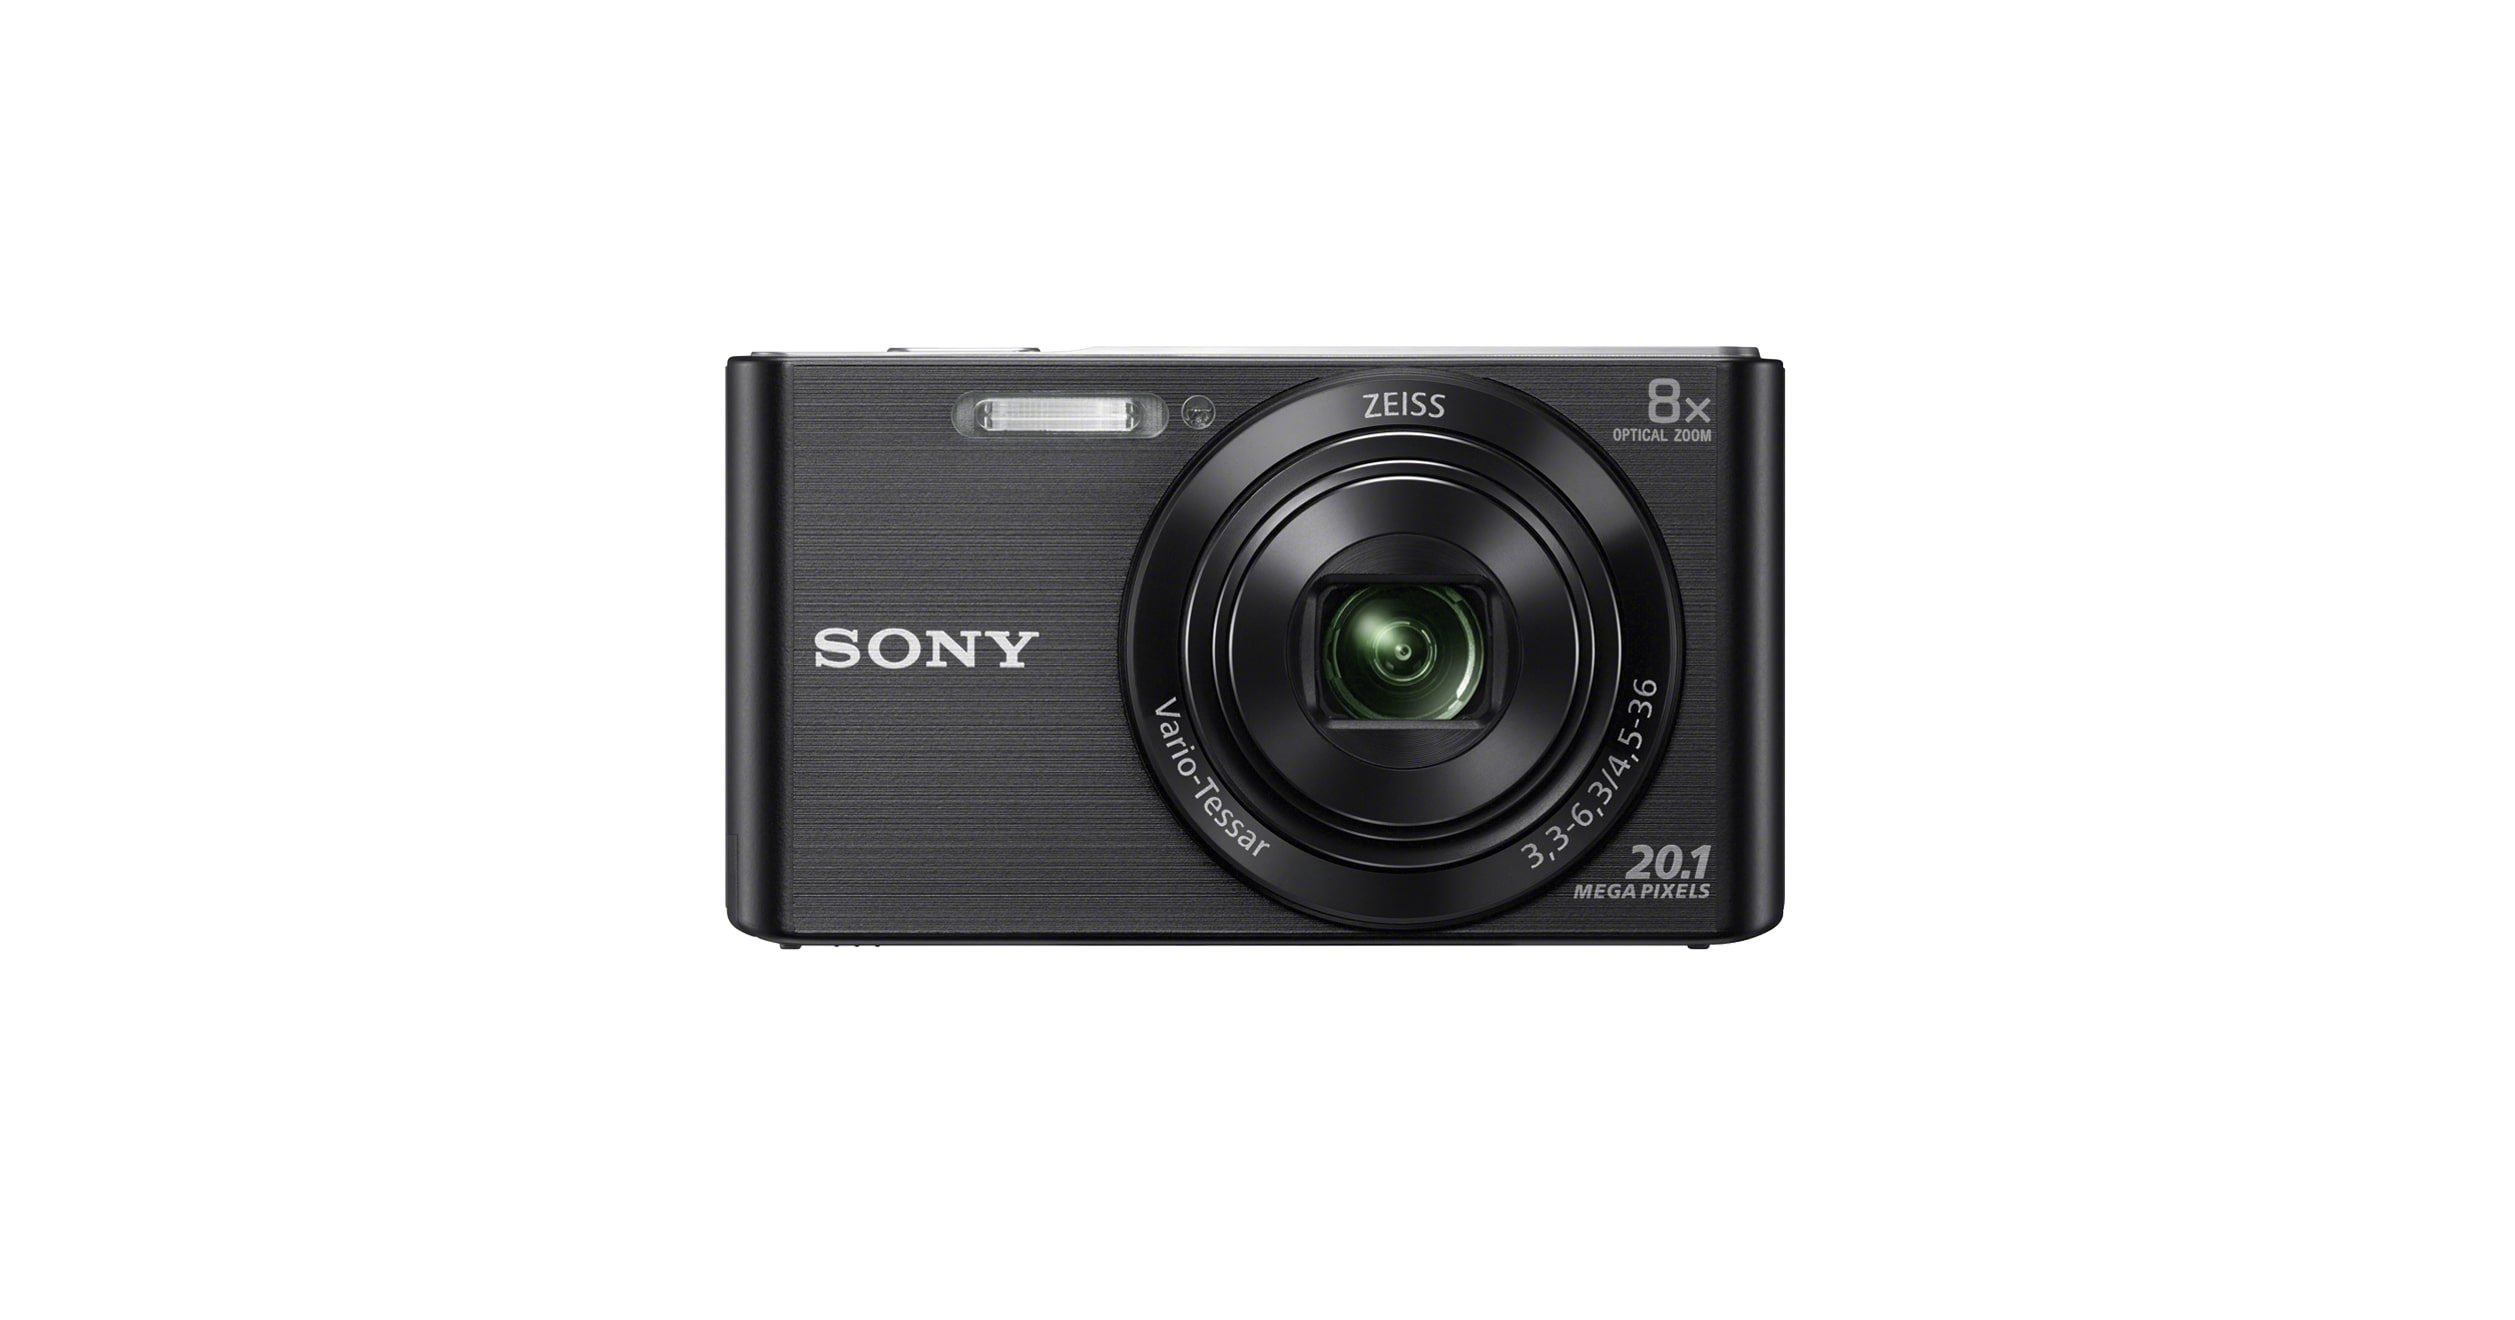 W830 Compact Camera with 8x Optical Zoom. DSC-W830